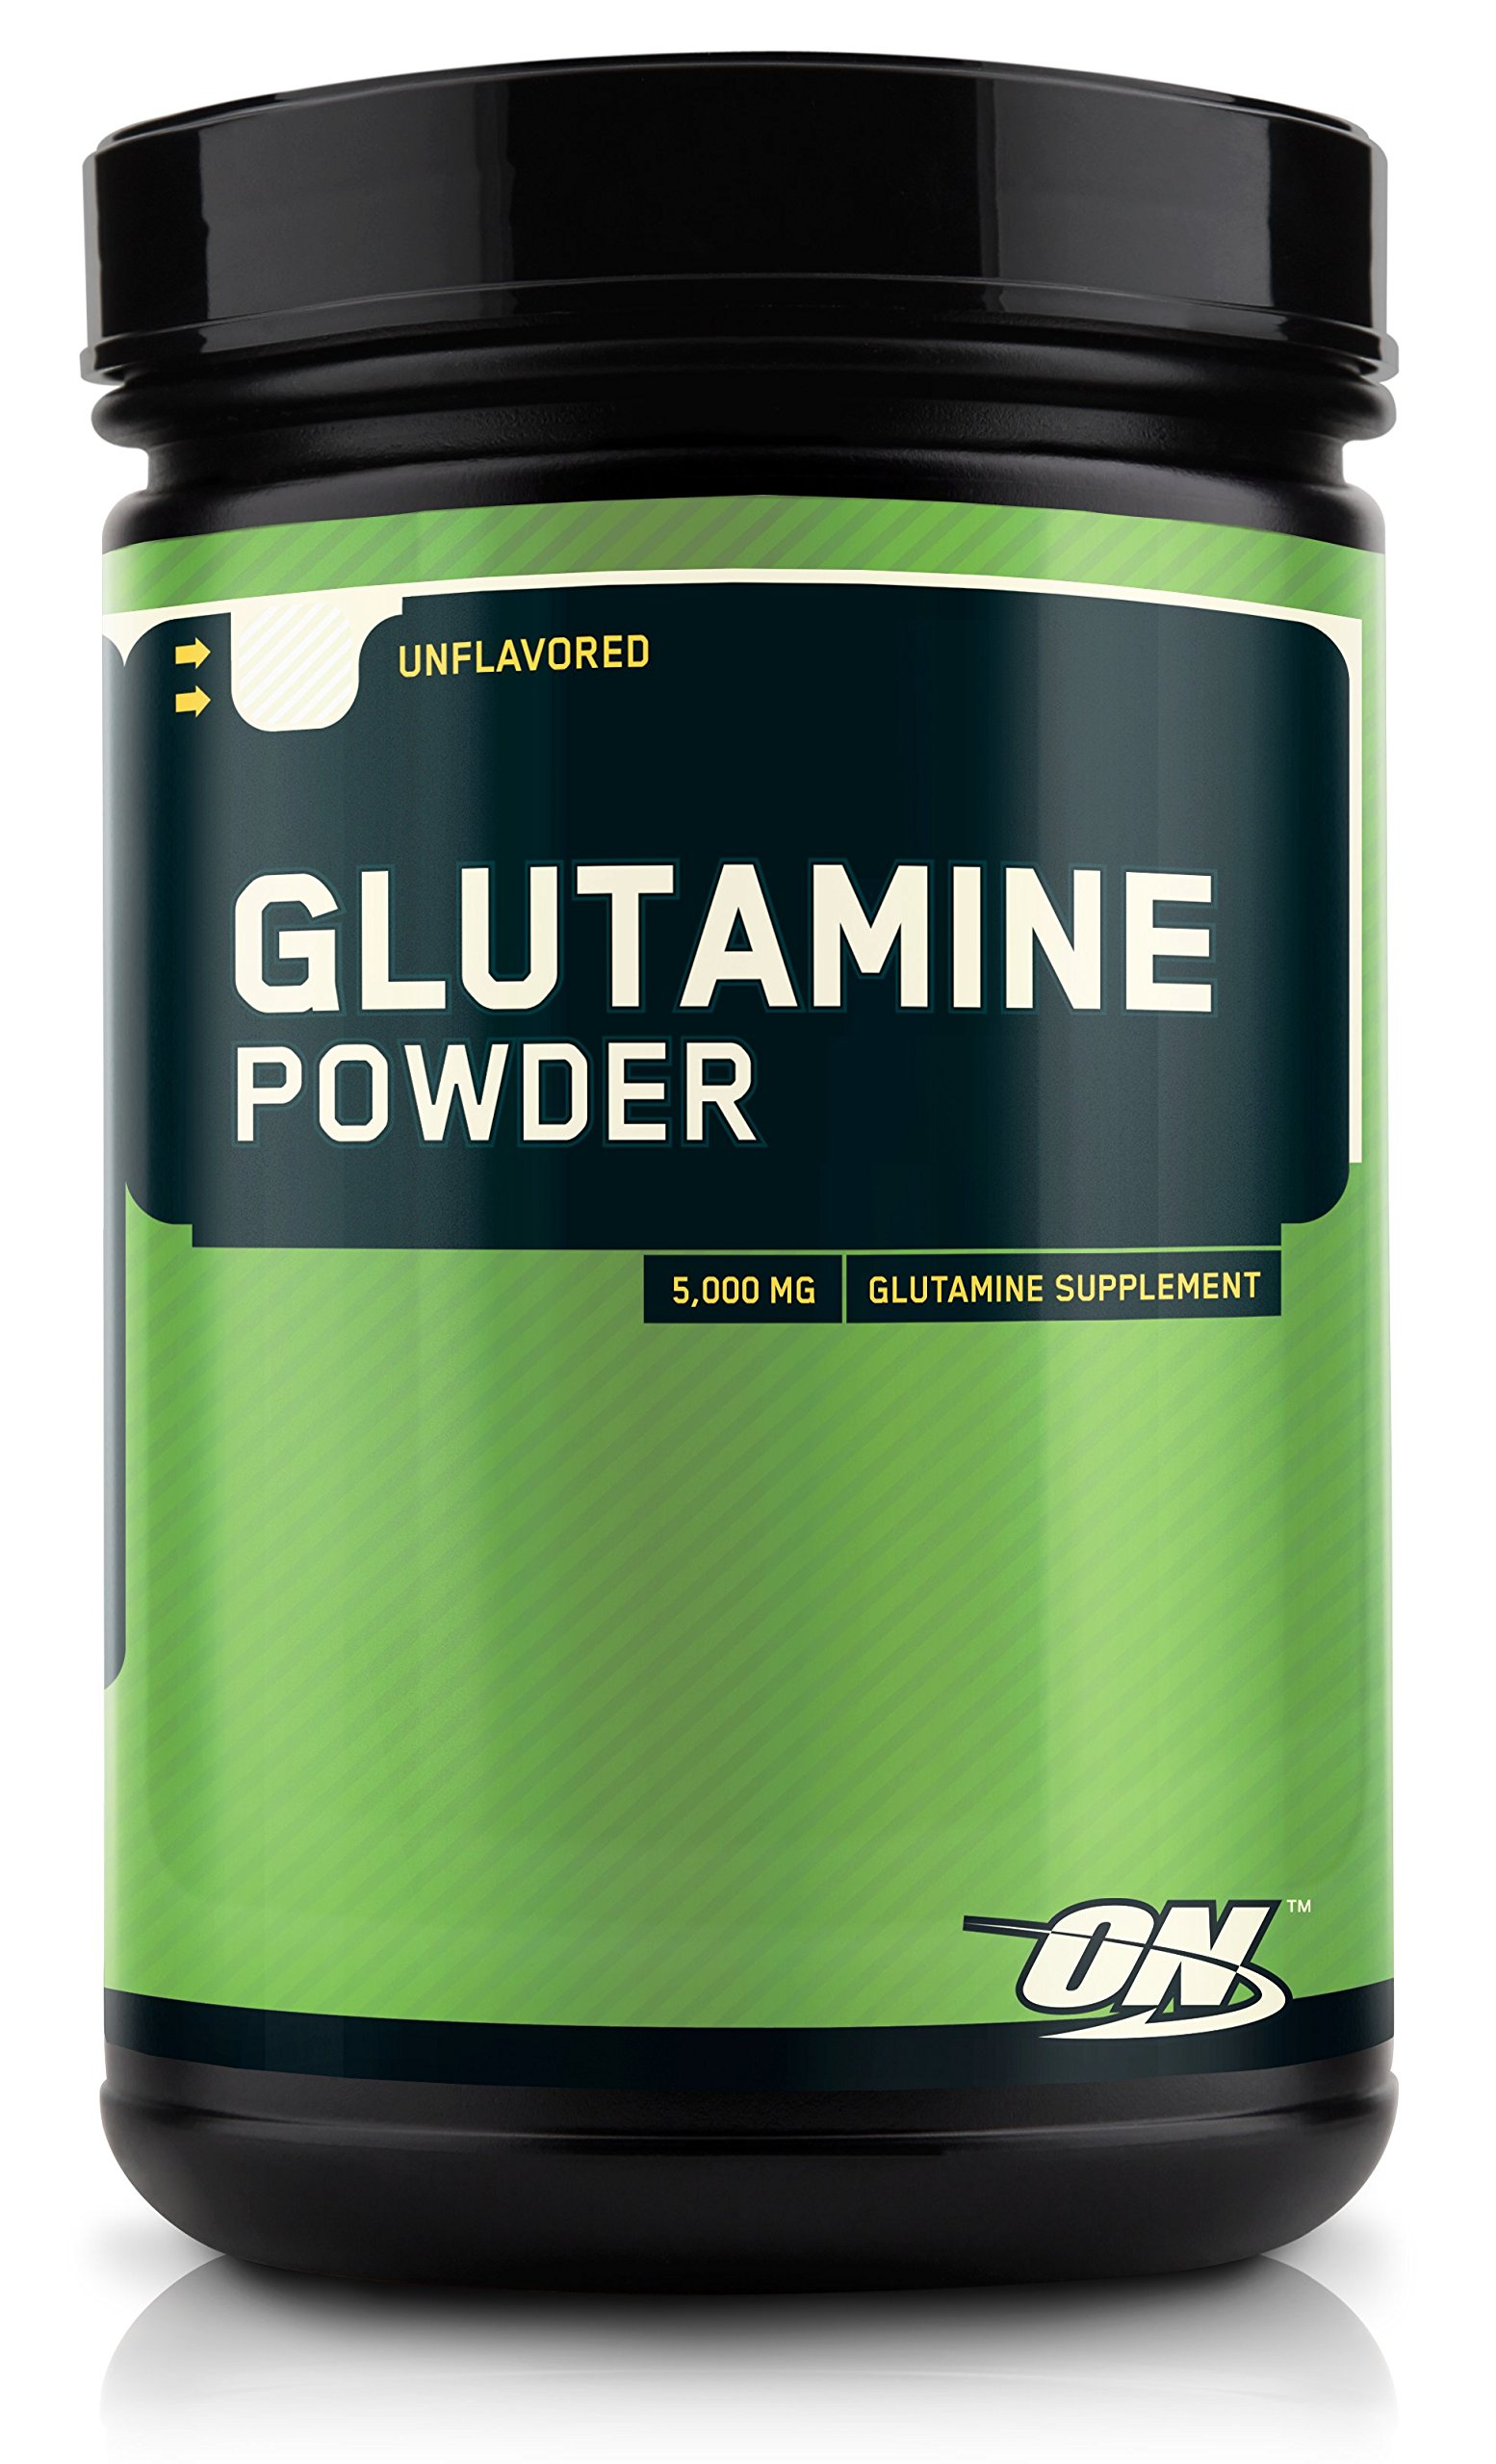 OPTIMUM NUTRITION L-Glutamine Muscle Recovery Powder, 1000 Gram by Optimum Nutrition